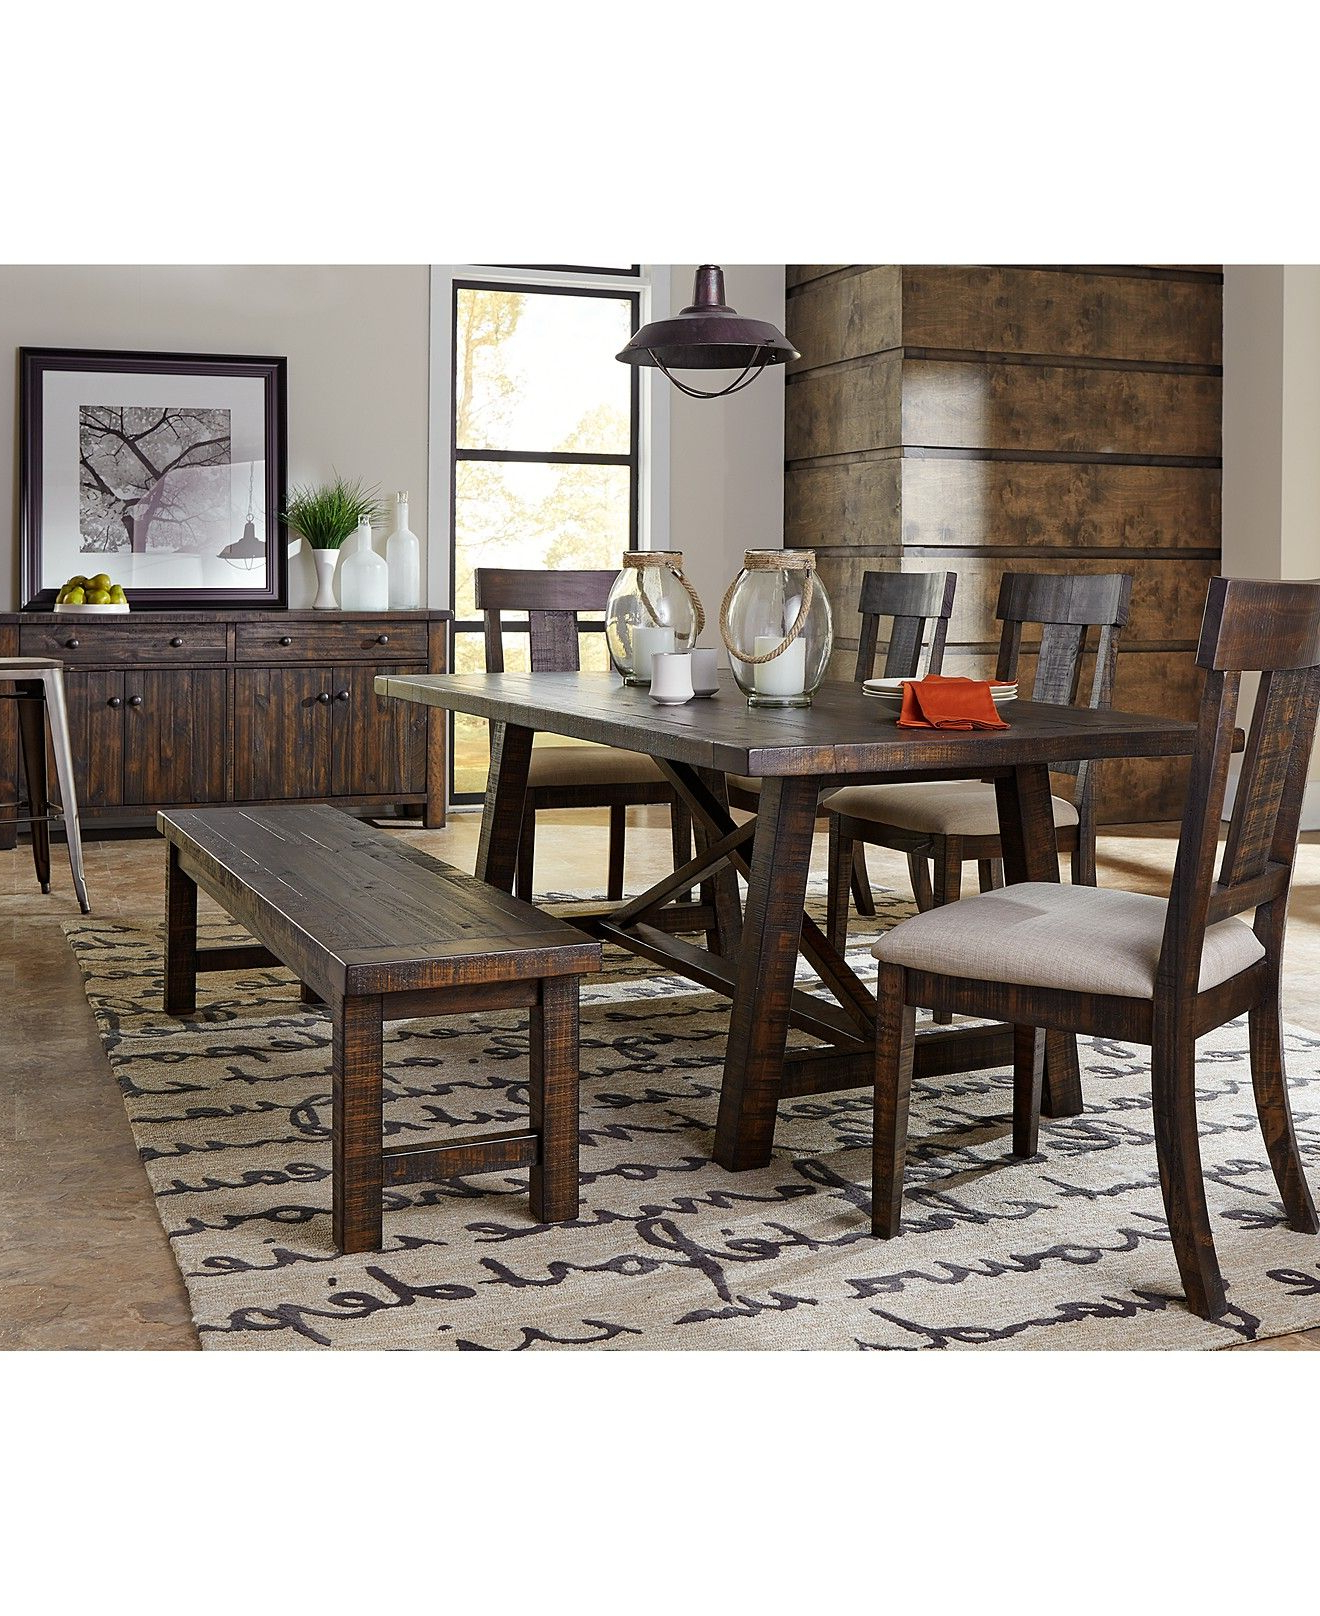 Latest Ember Dining Room Furniture Collection – Dining Room In Acacia Dining Tables With Black Rocket Legs (View 16 of 30)